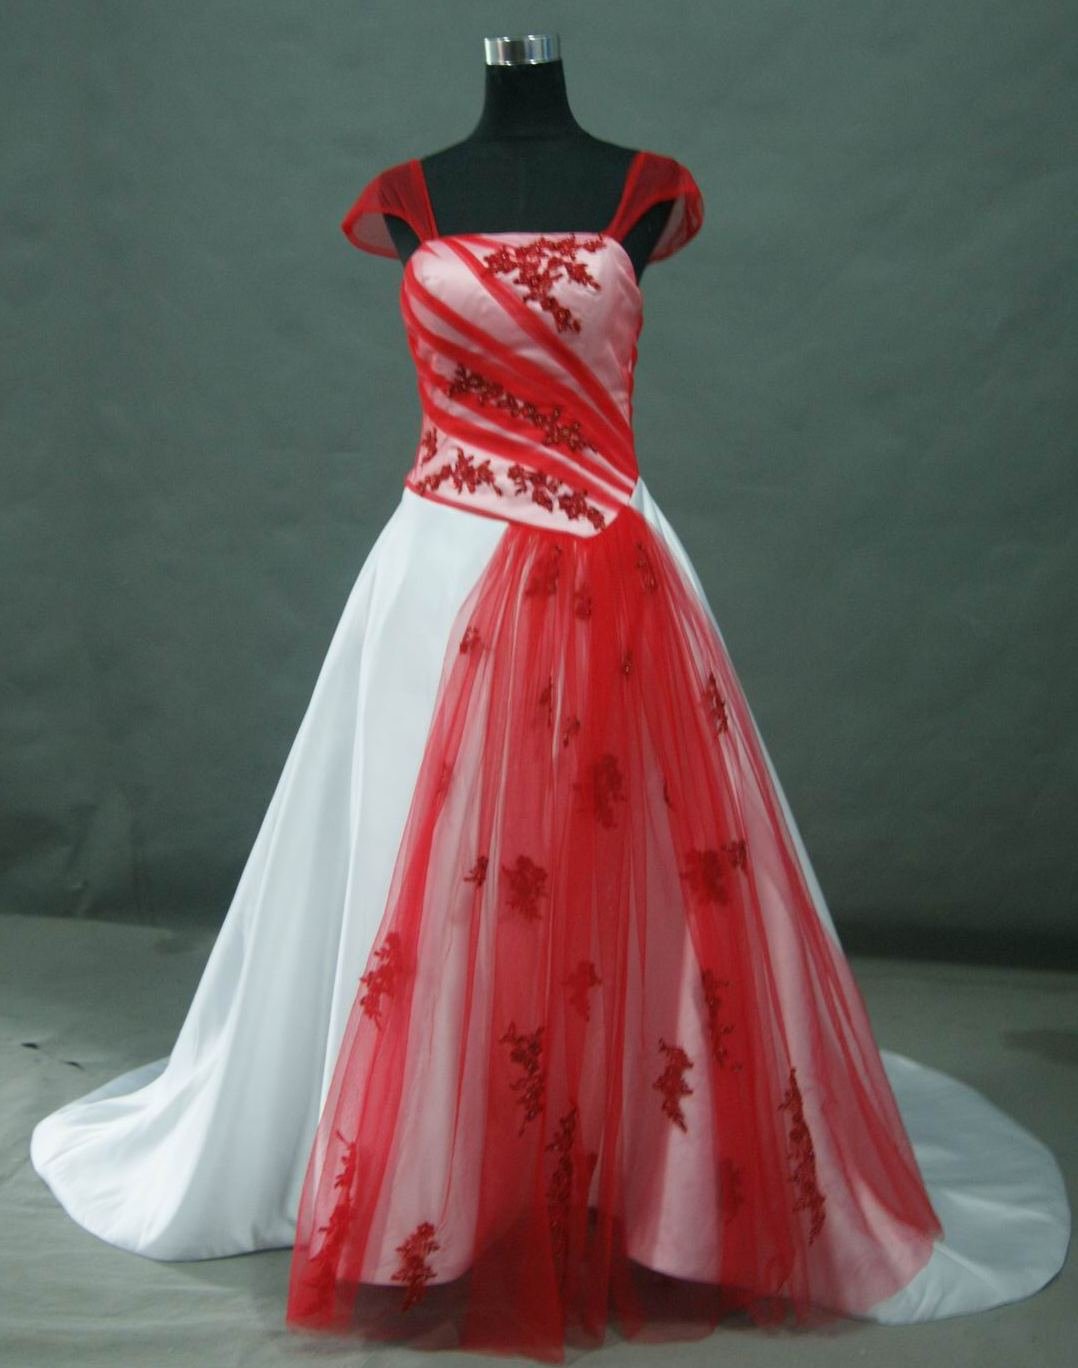 Bridal gowns with color red and white wedding dress with